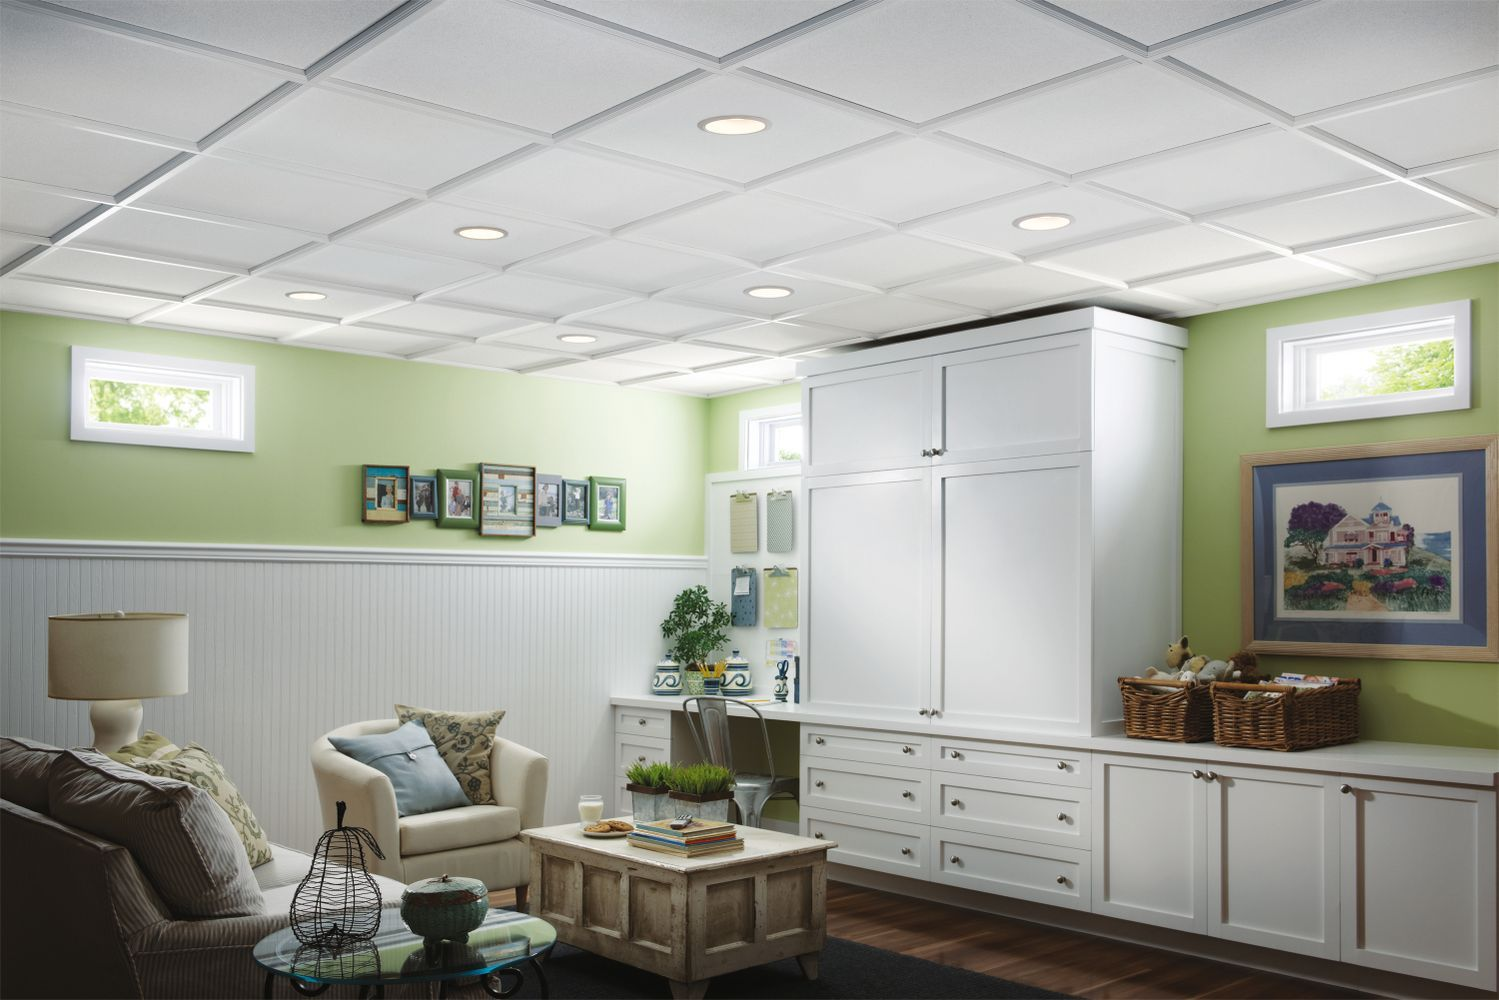 sahara homestyle ceilings smooth paintable 2 x 2 panel 273 by rh pinterest com Armstrong 1205 Ceiling Tile Armstrong Ceiling Tile Planks